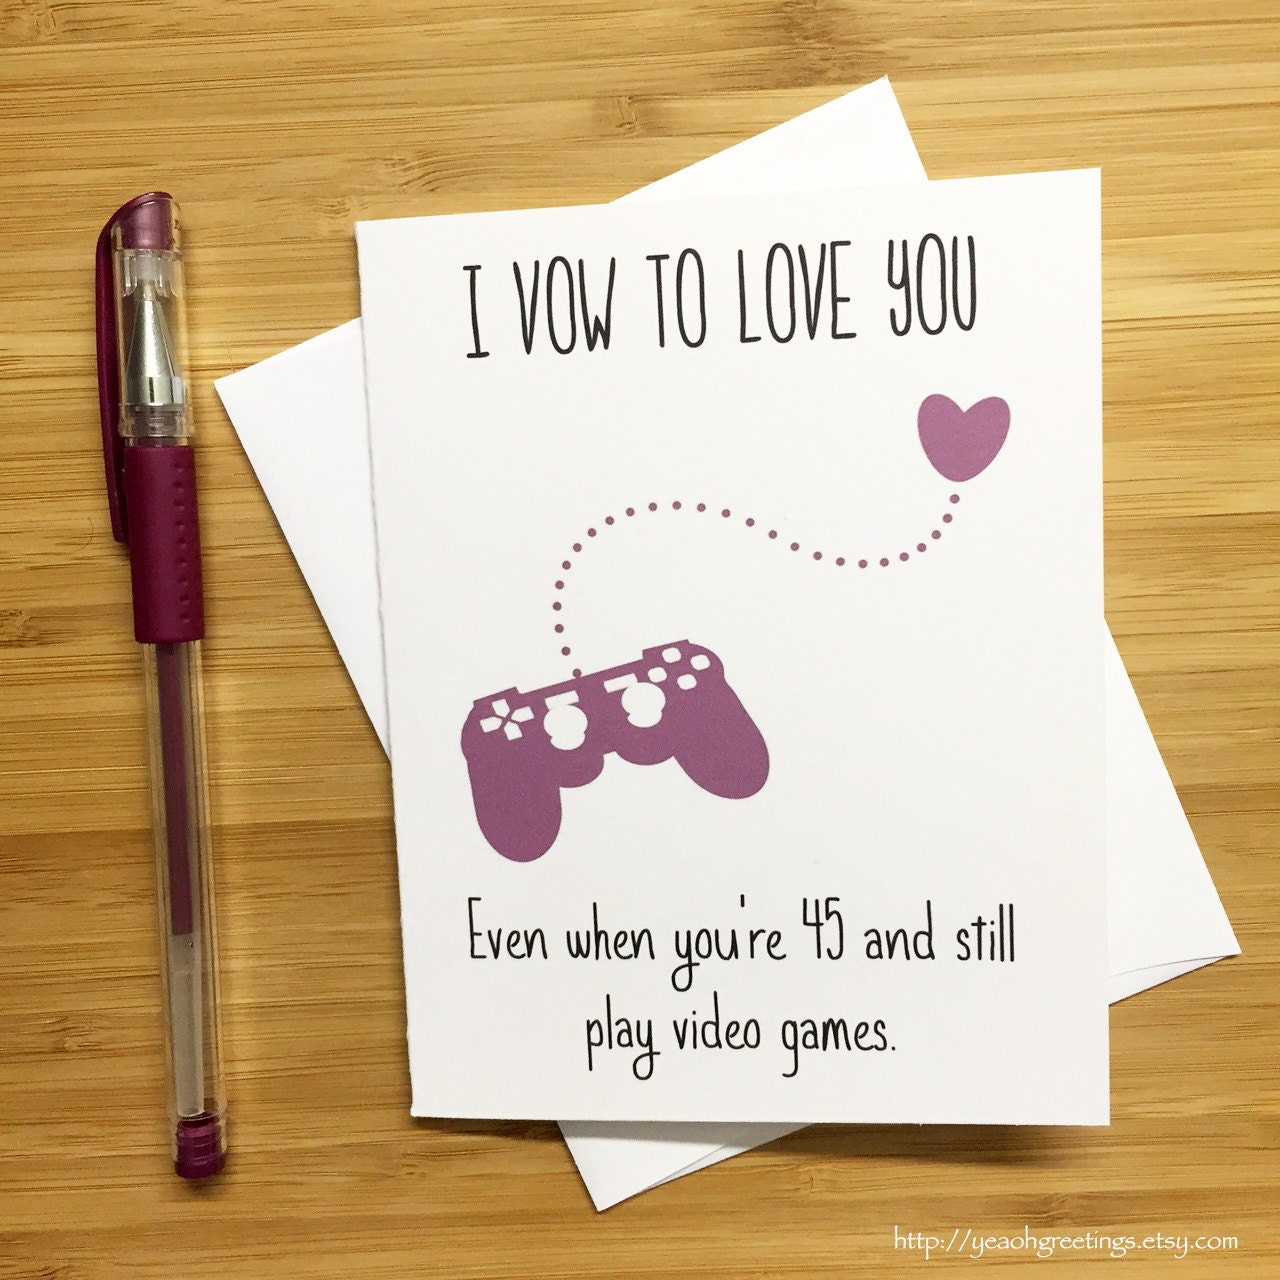 Cute Love Card For Video Game Lovers Happy Anniversary Card